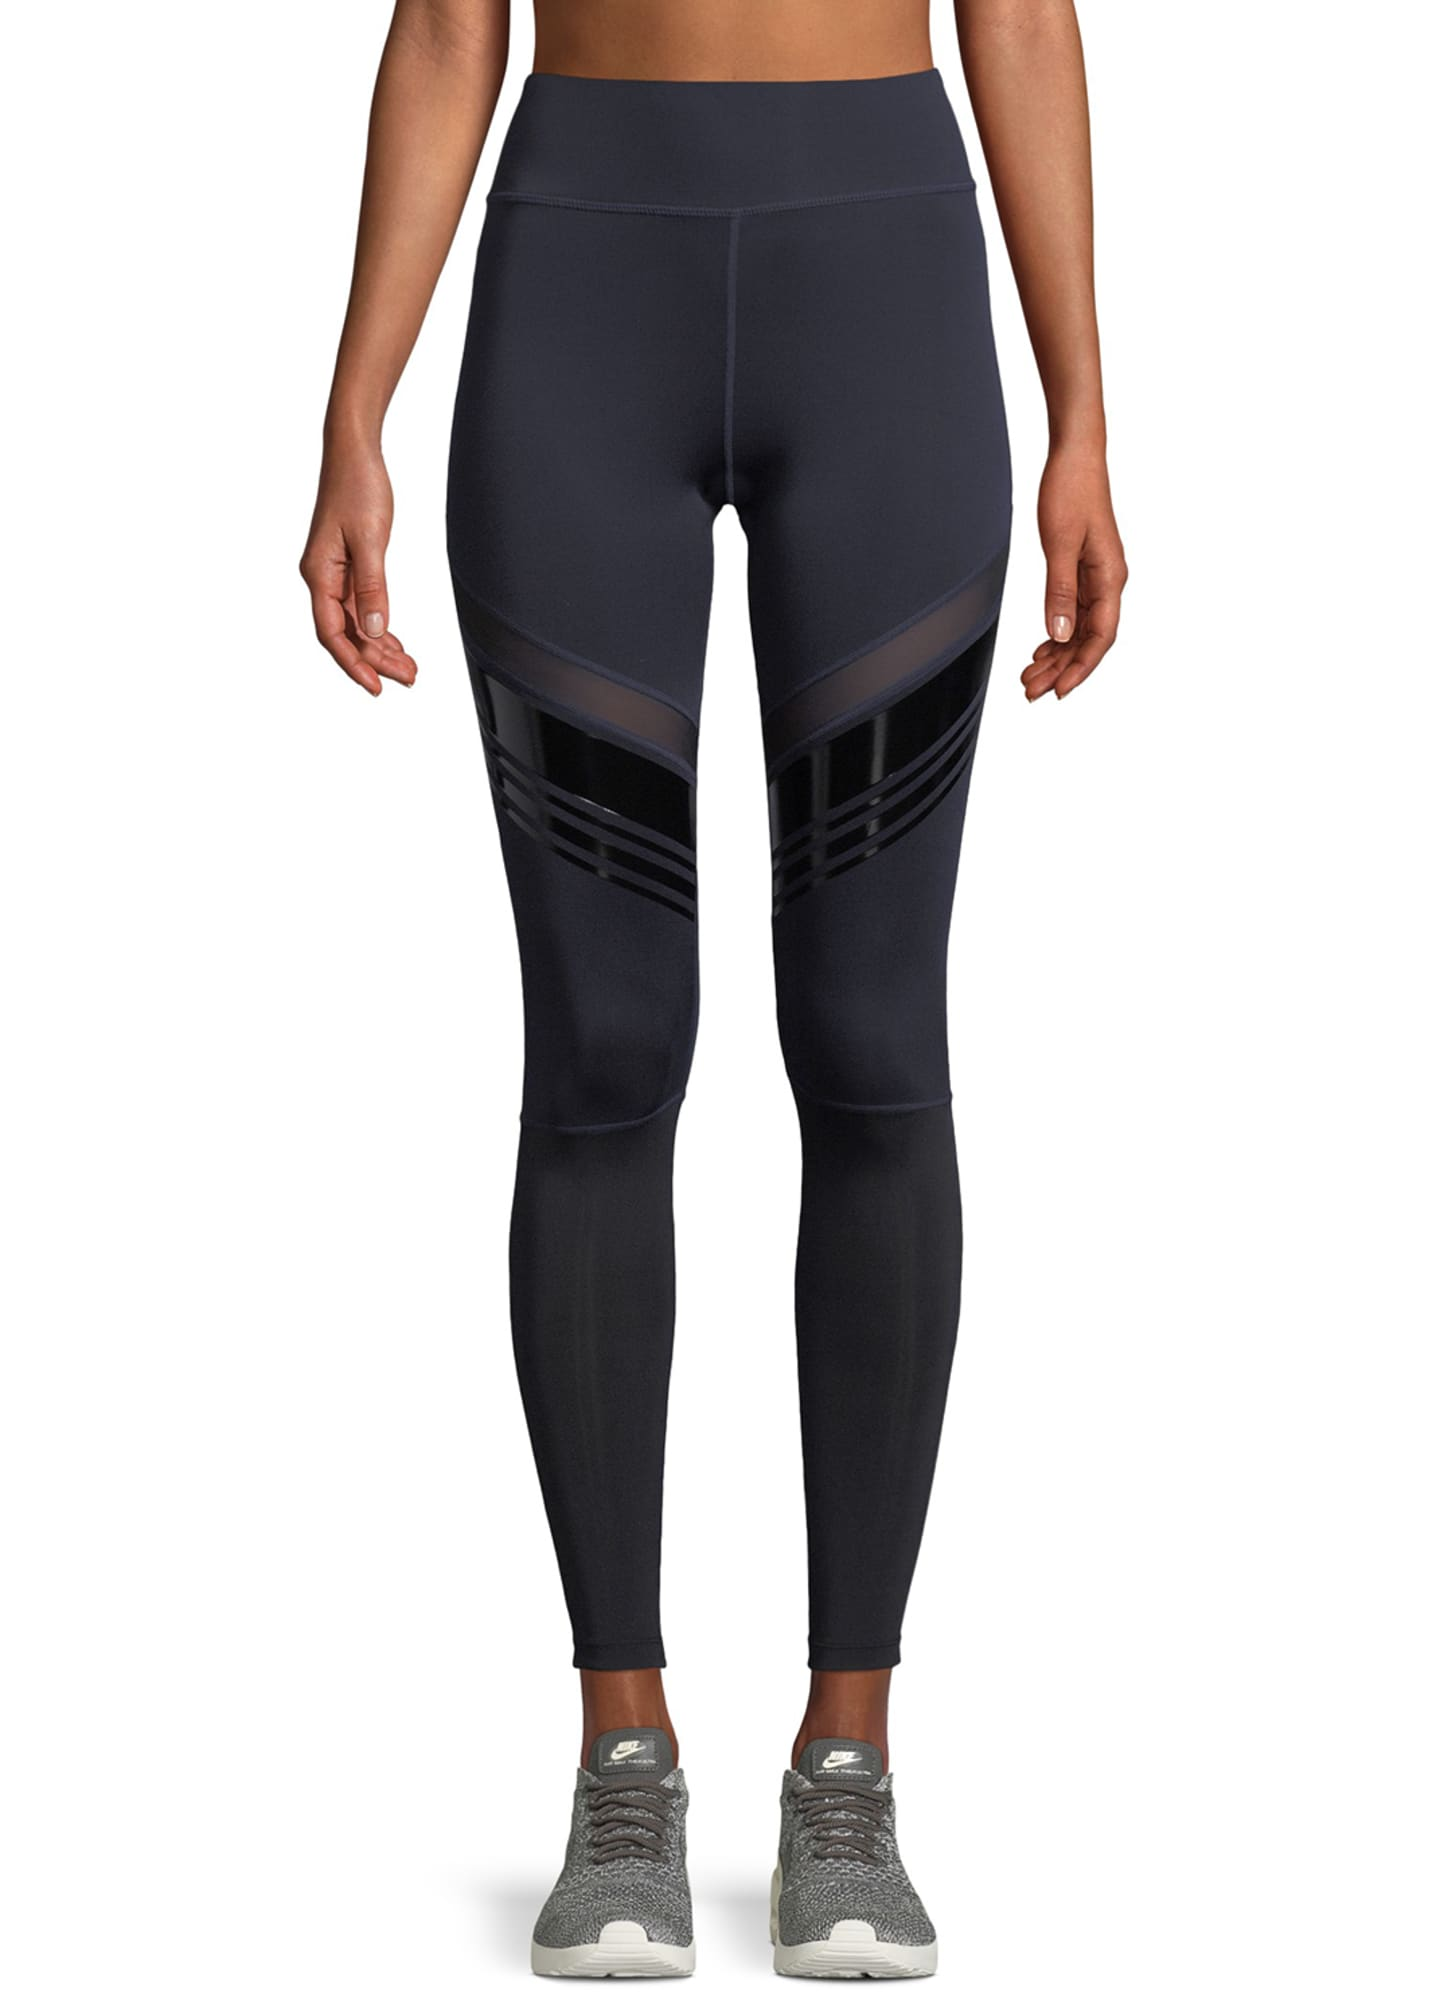 Nylora Reece Activewear Leggings